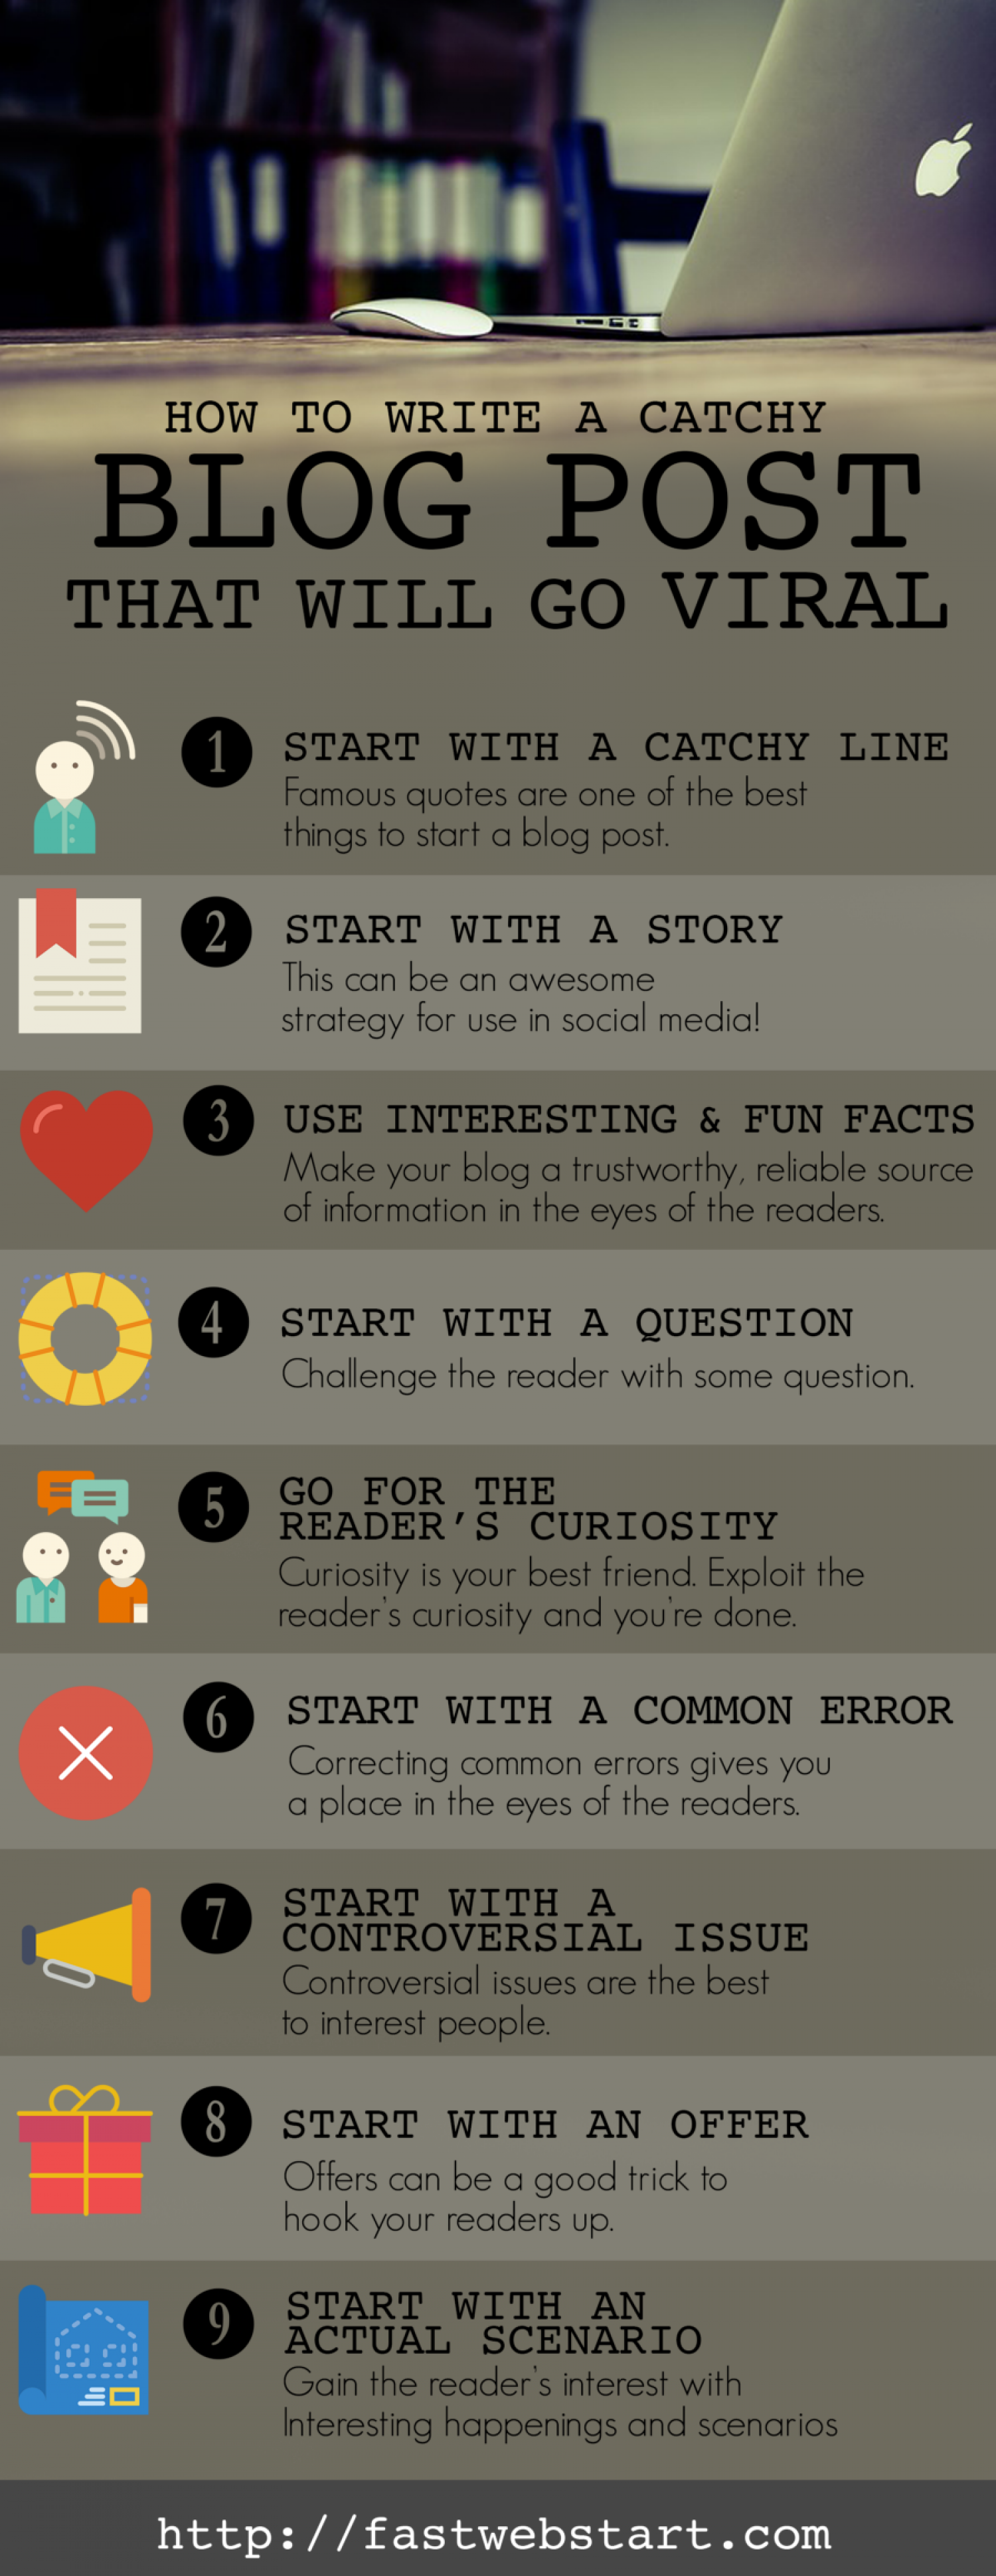 How to Write a Catchy Blog Post that Will Go Viral Infographic